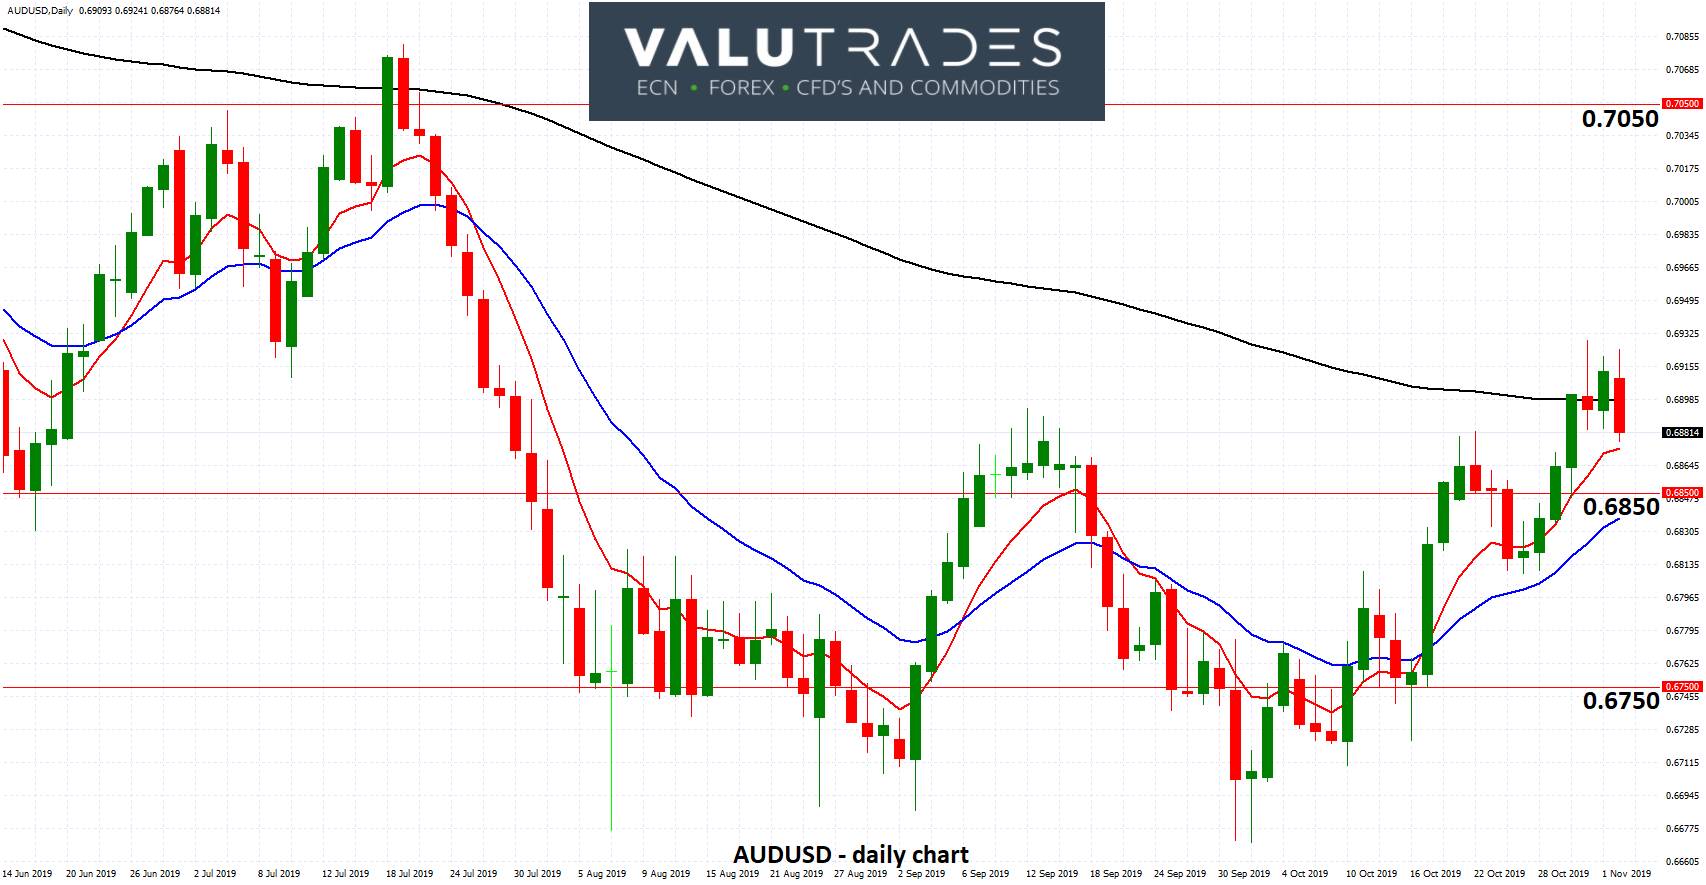 AUDUSD - Eases from Three Month High Above 0.69 as Eyes are on RBA